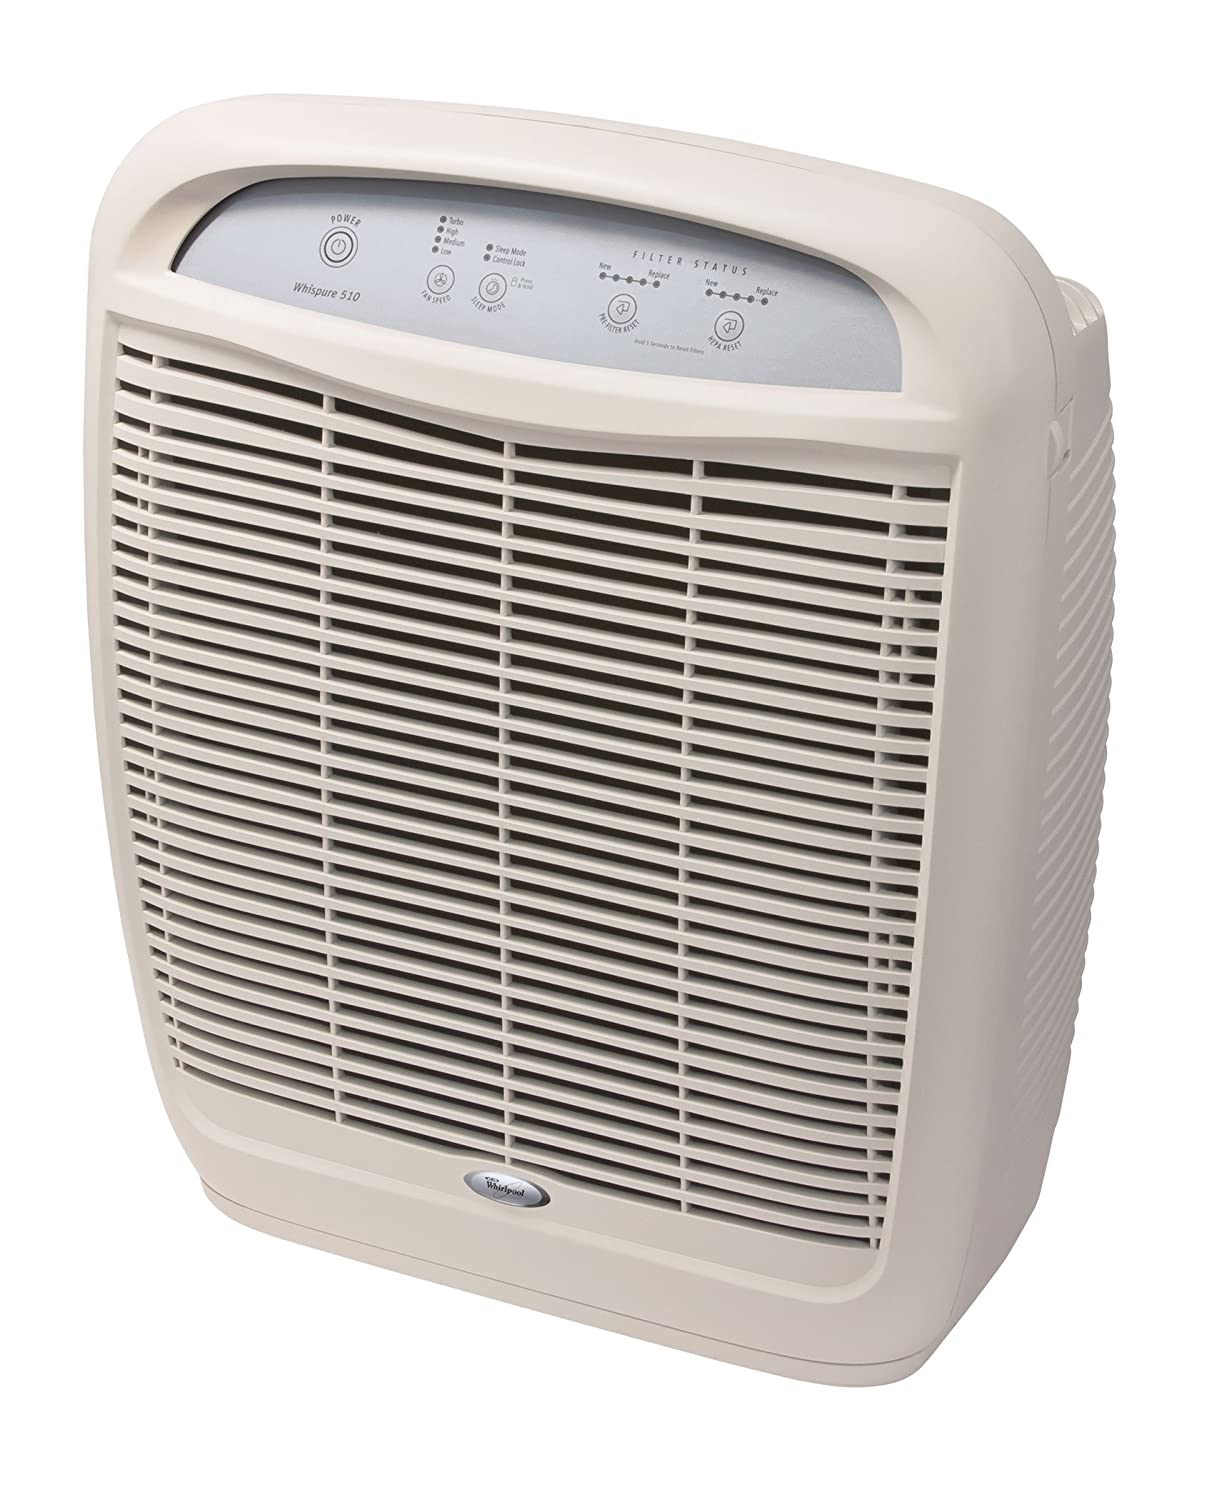 Best air purifier for dust: Whirlpool Whispure Air Purifier